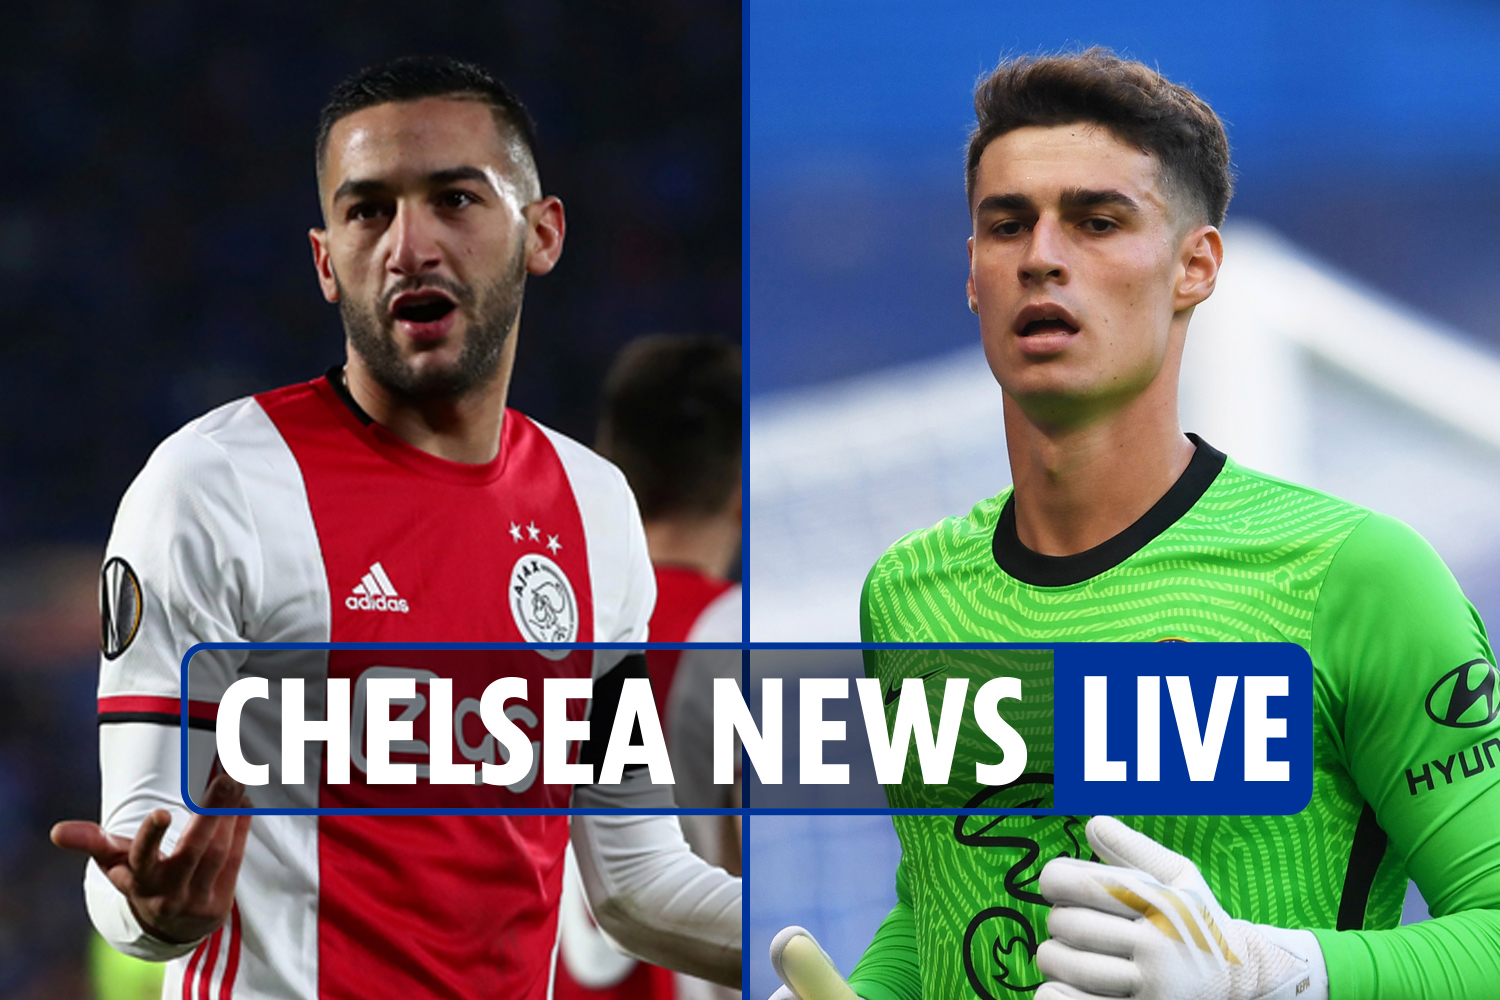 7pm Chelsea news LIVE: Werner in the goals, Southampton late draw, defensive woes, Jorginho deal, Donnarumma linked